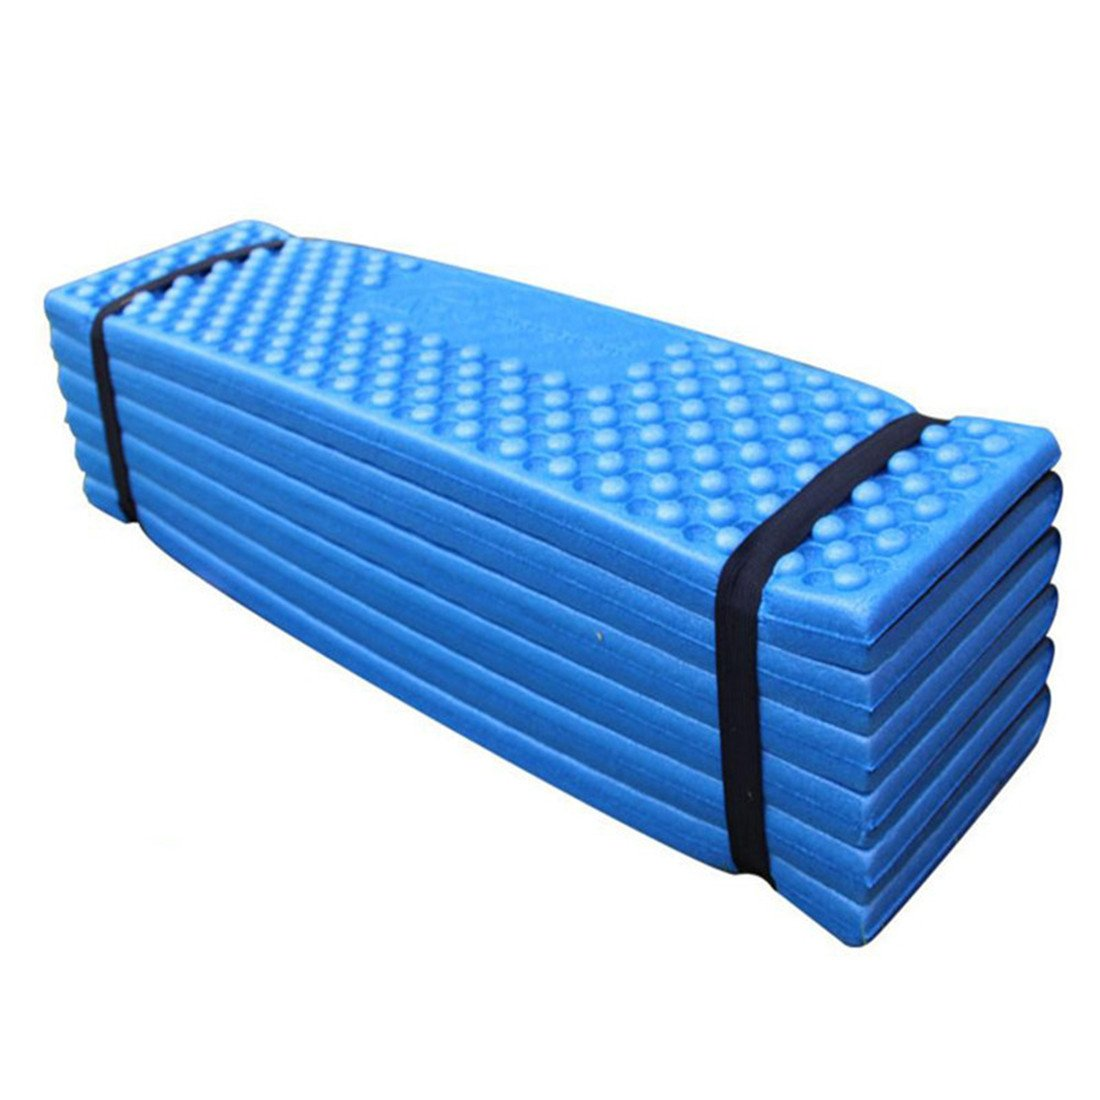 chicsoleil Ultralight Sleeping Pad – ultra-inflatable Air Sleeping Padコンパクトバックパッキングのキャンプ旅行ハイキング B079QGX9XM ブルー&ブラック